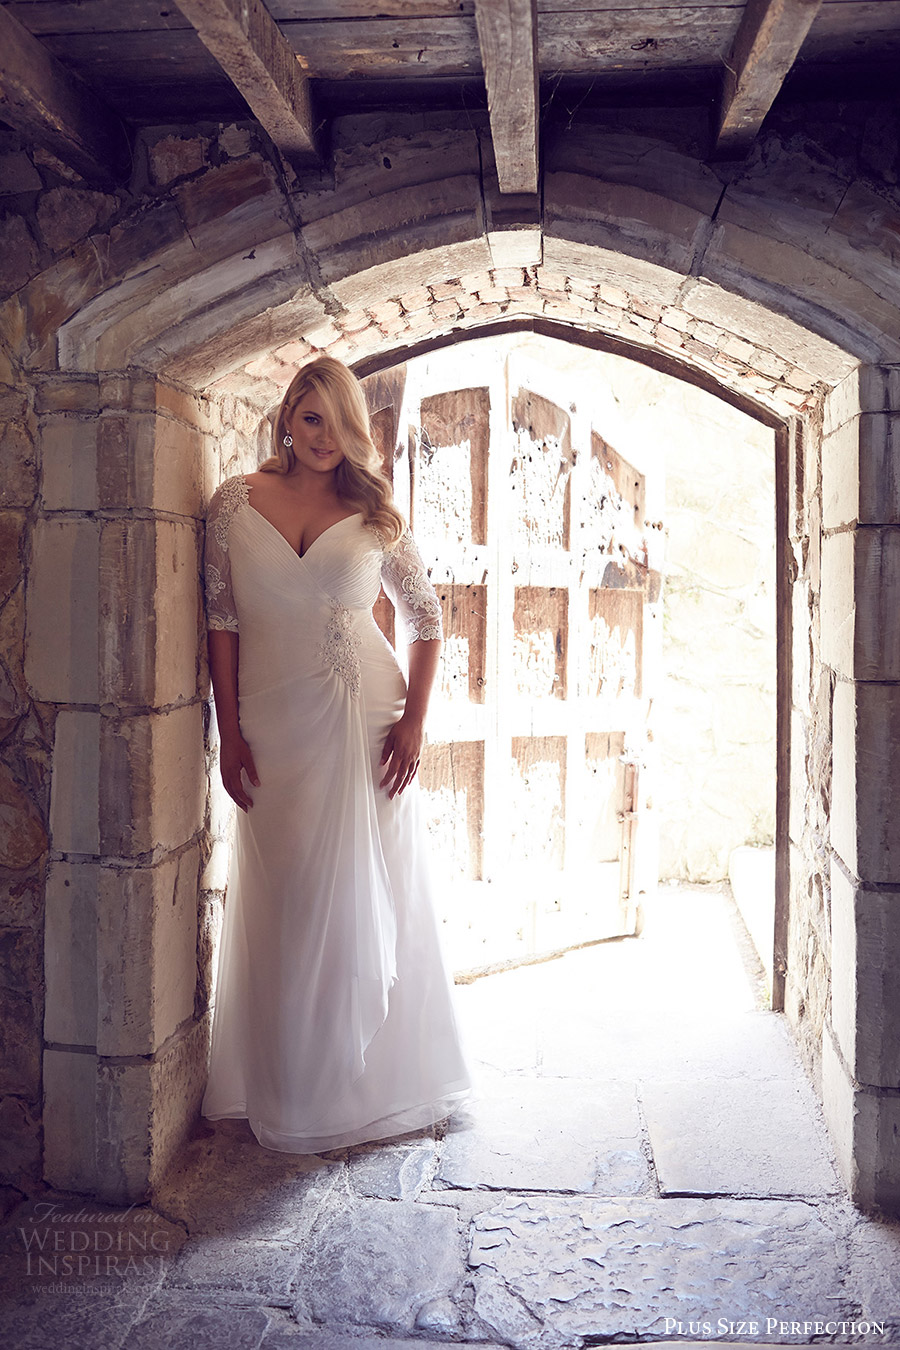 Plus Size Perfection Wedding Dresses It S A Love Story